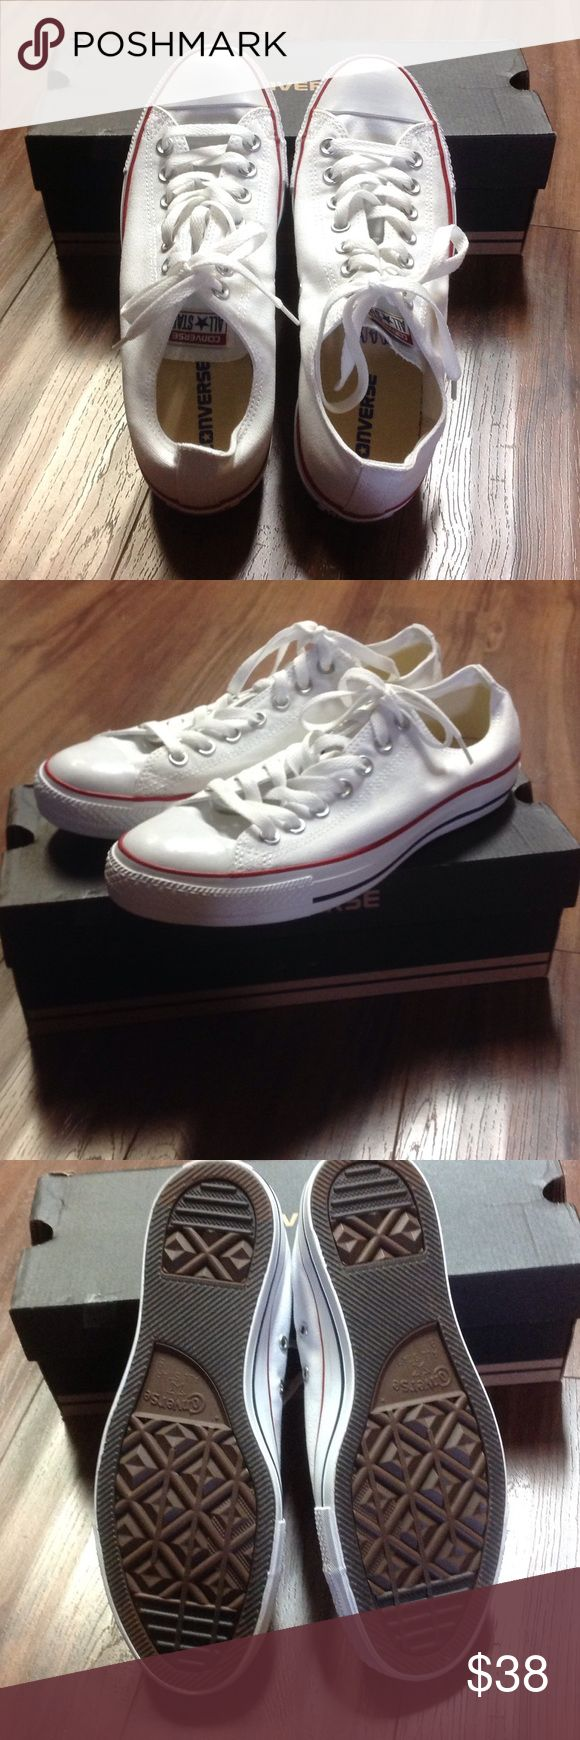 White converse shoes NEW! New with a box. Size 9 for men and 11 for women. Converse Shoes Sneakers